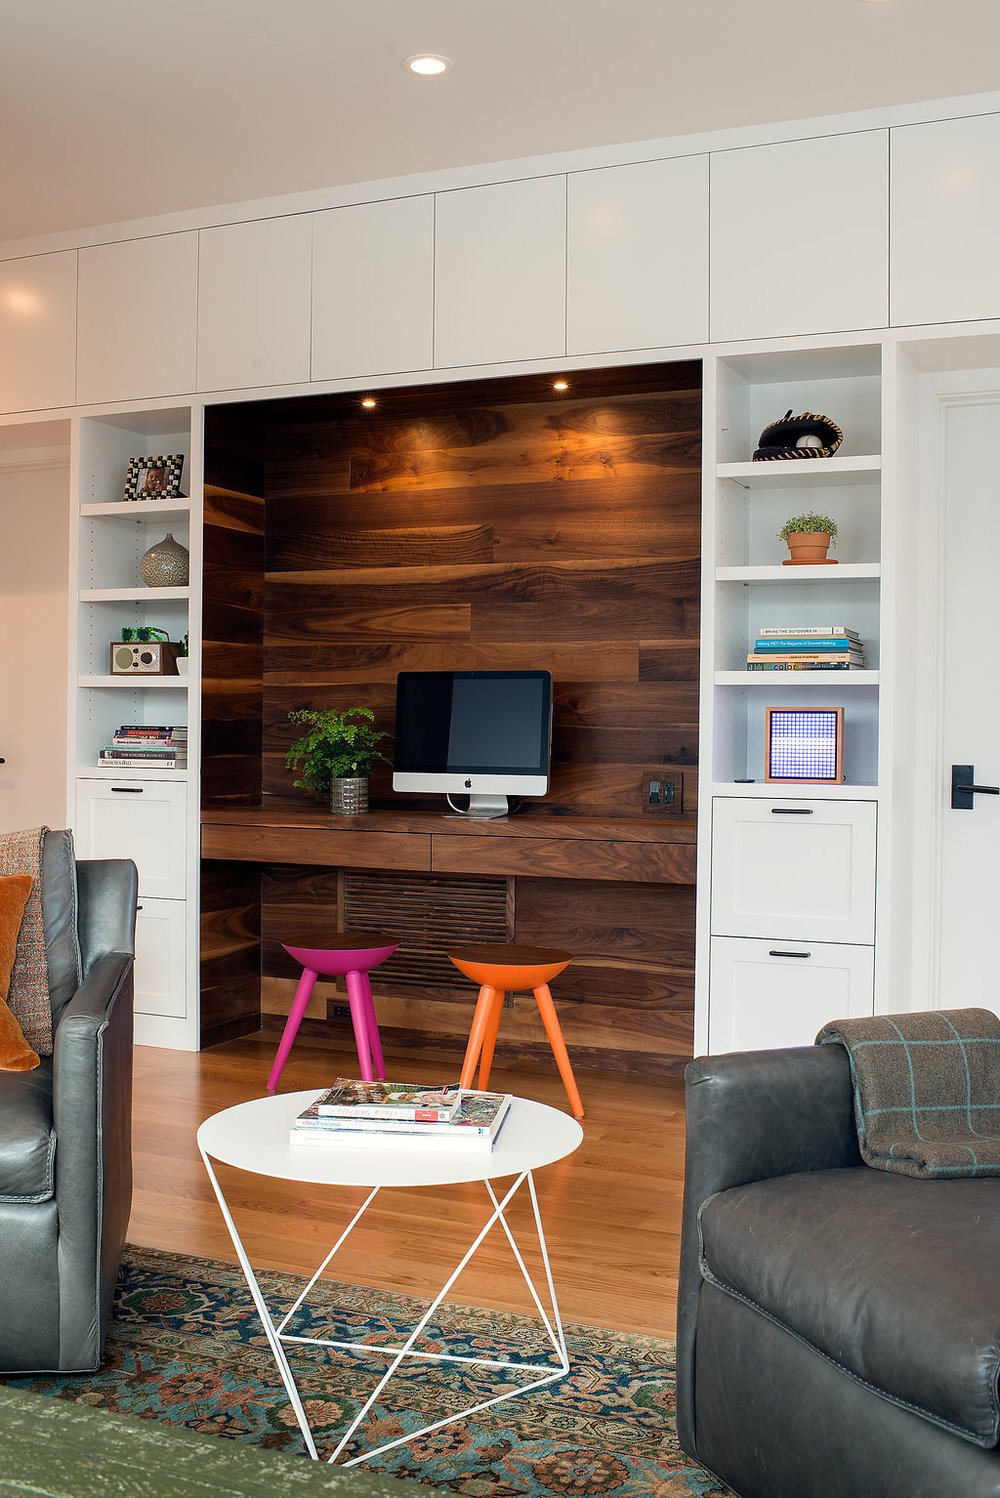 custom wood built in desk area with open shelving and drawers and colorful accent chairs.jpg